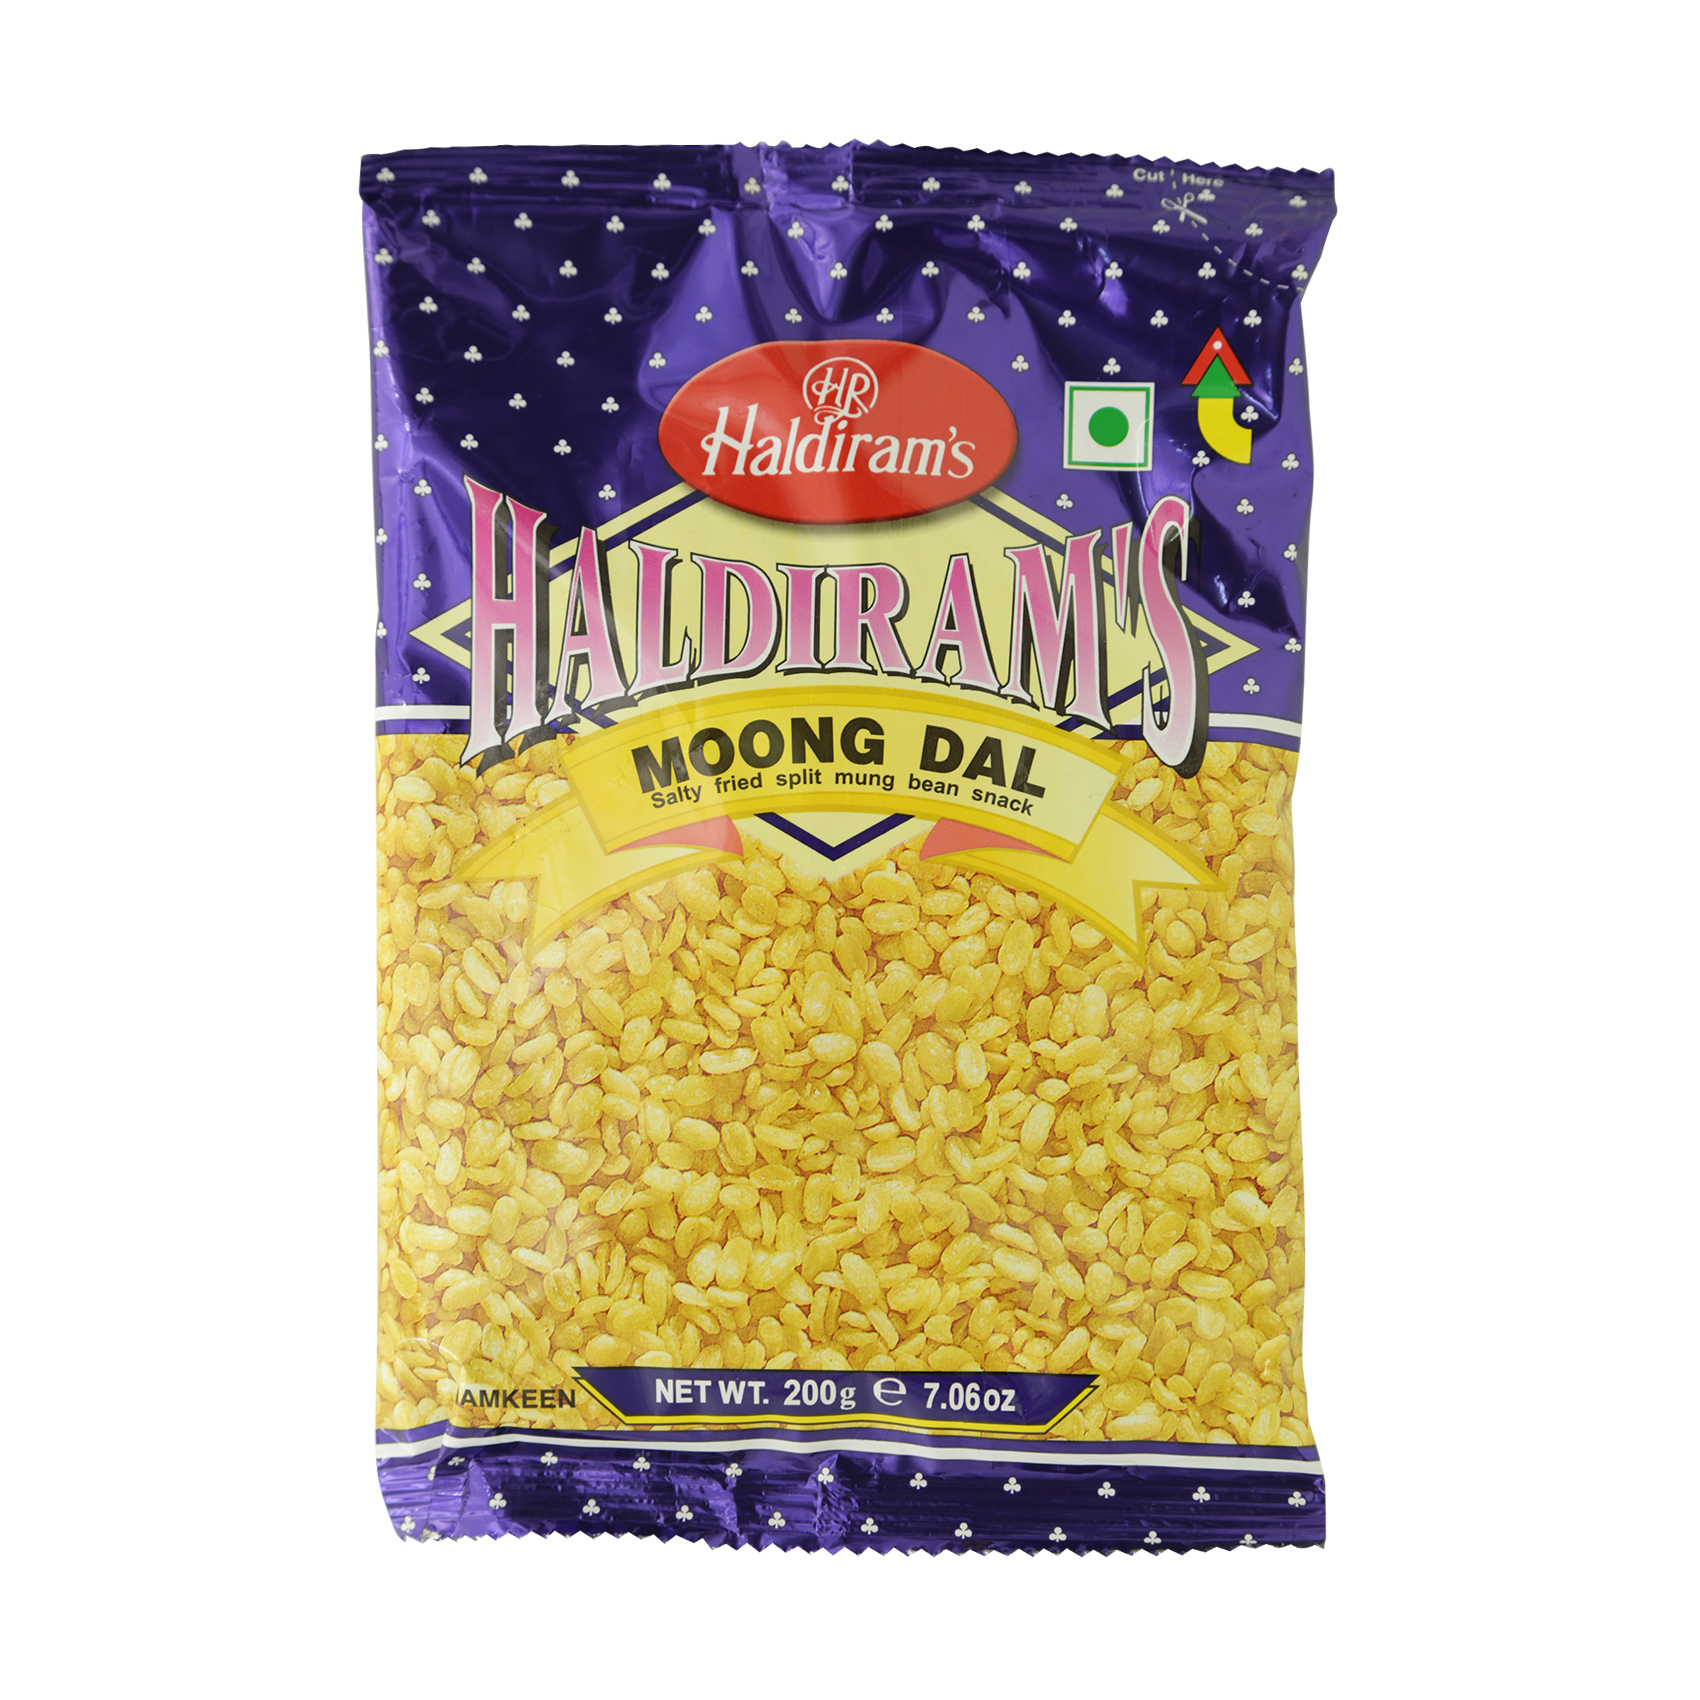 HALDIRAM'S FRIED MOONG DAL 200G